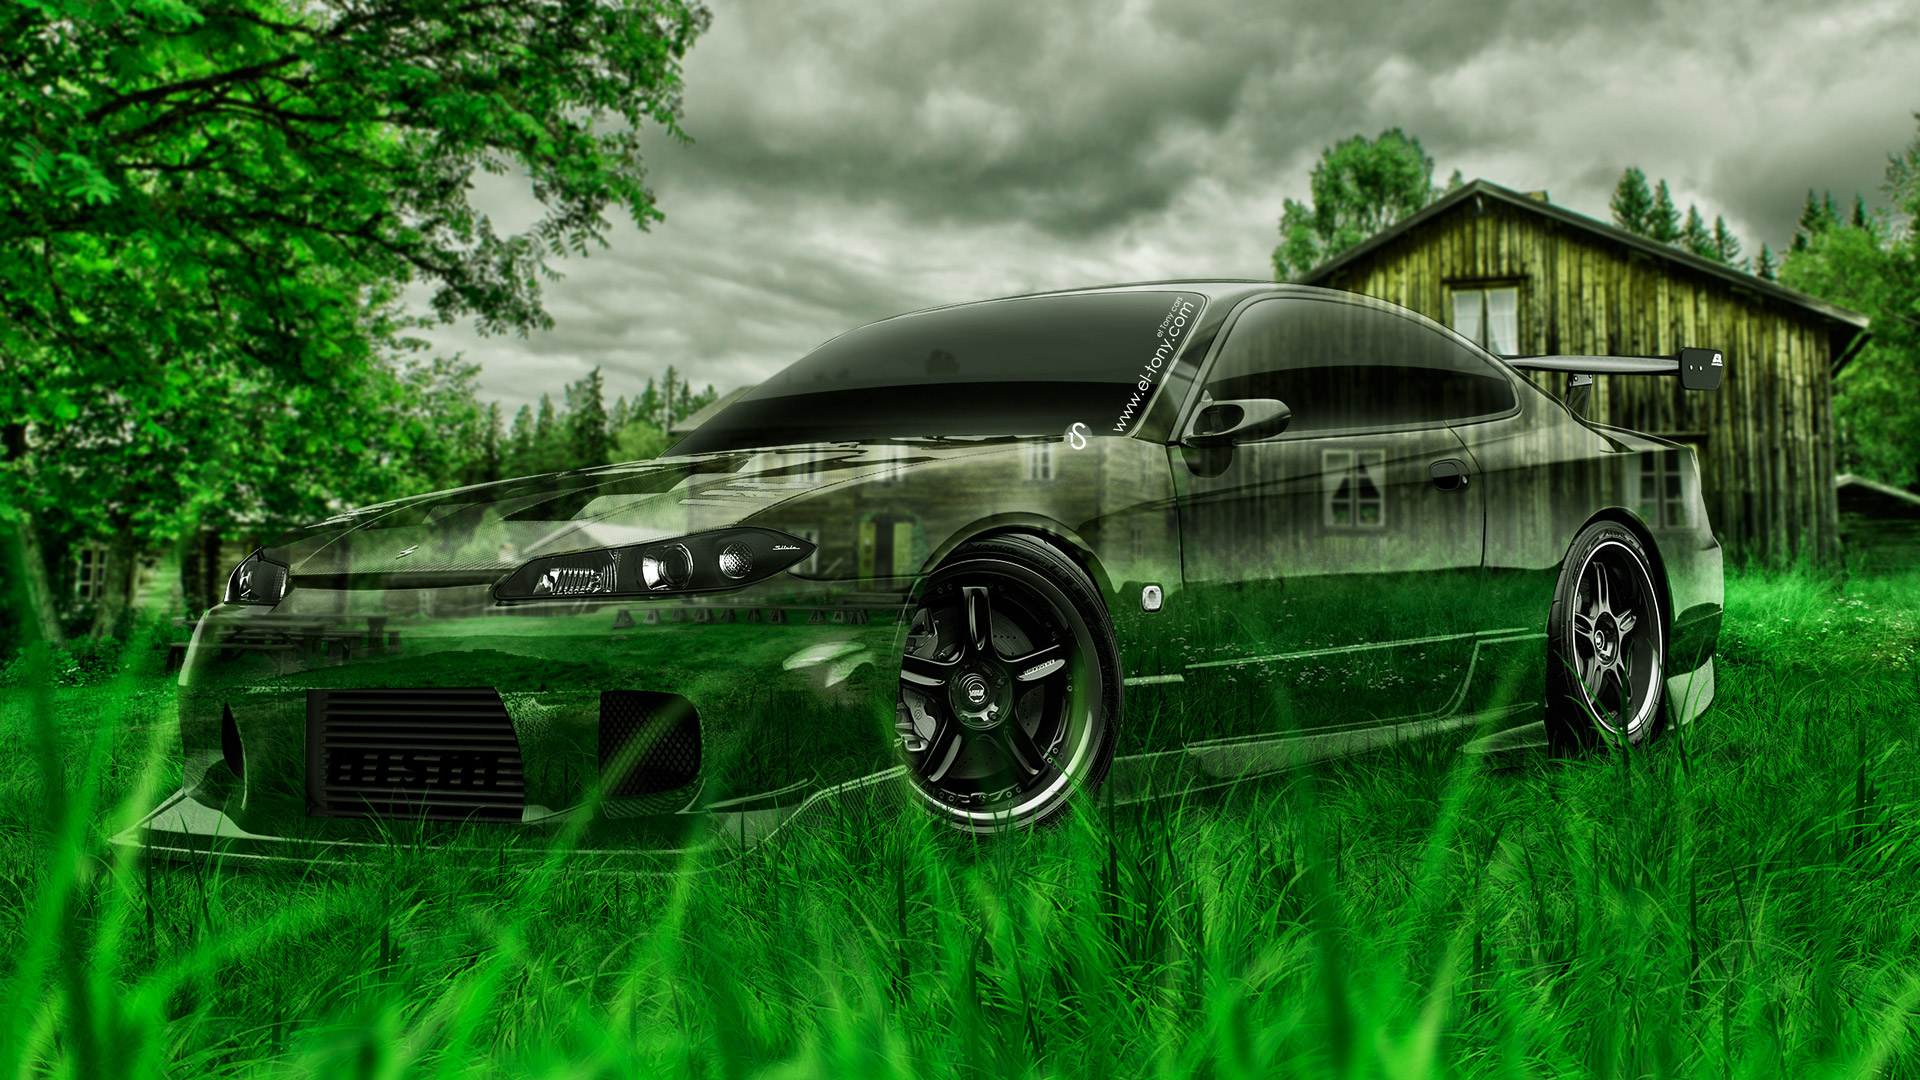 Toyota Altezza JDM Tuning Crystal Nature City Car. Nissan Silvia S15 JDM  Crystal Nature Car 2014